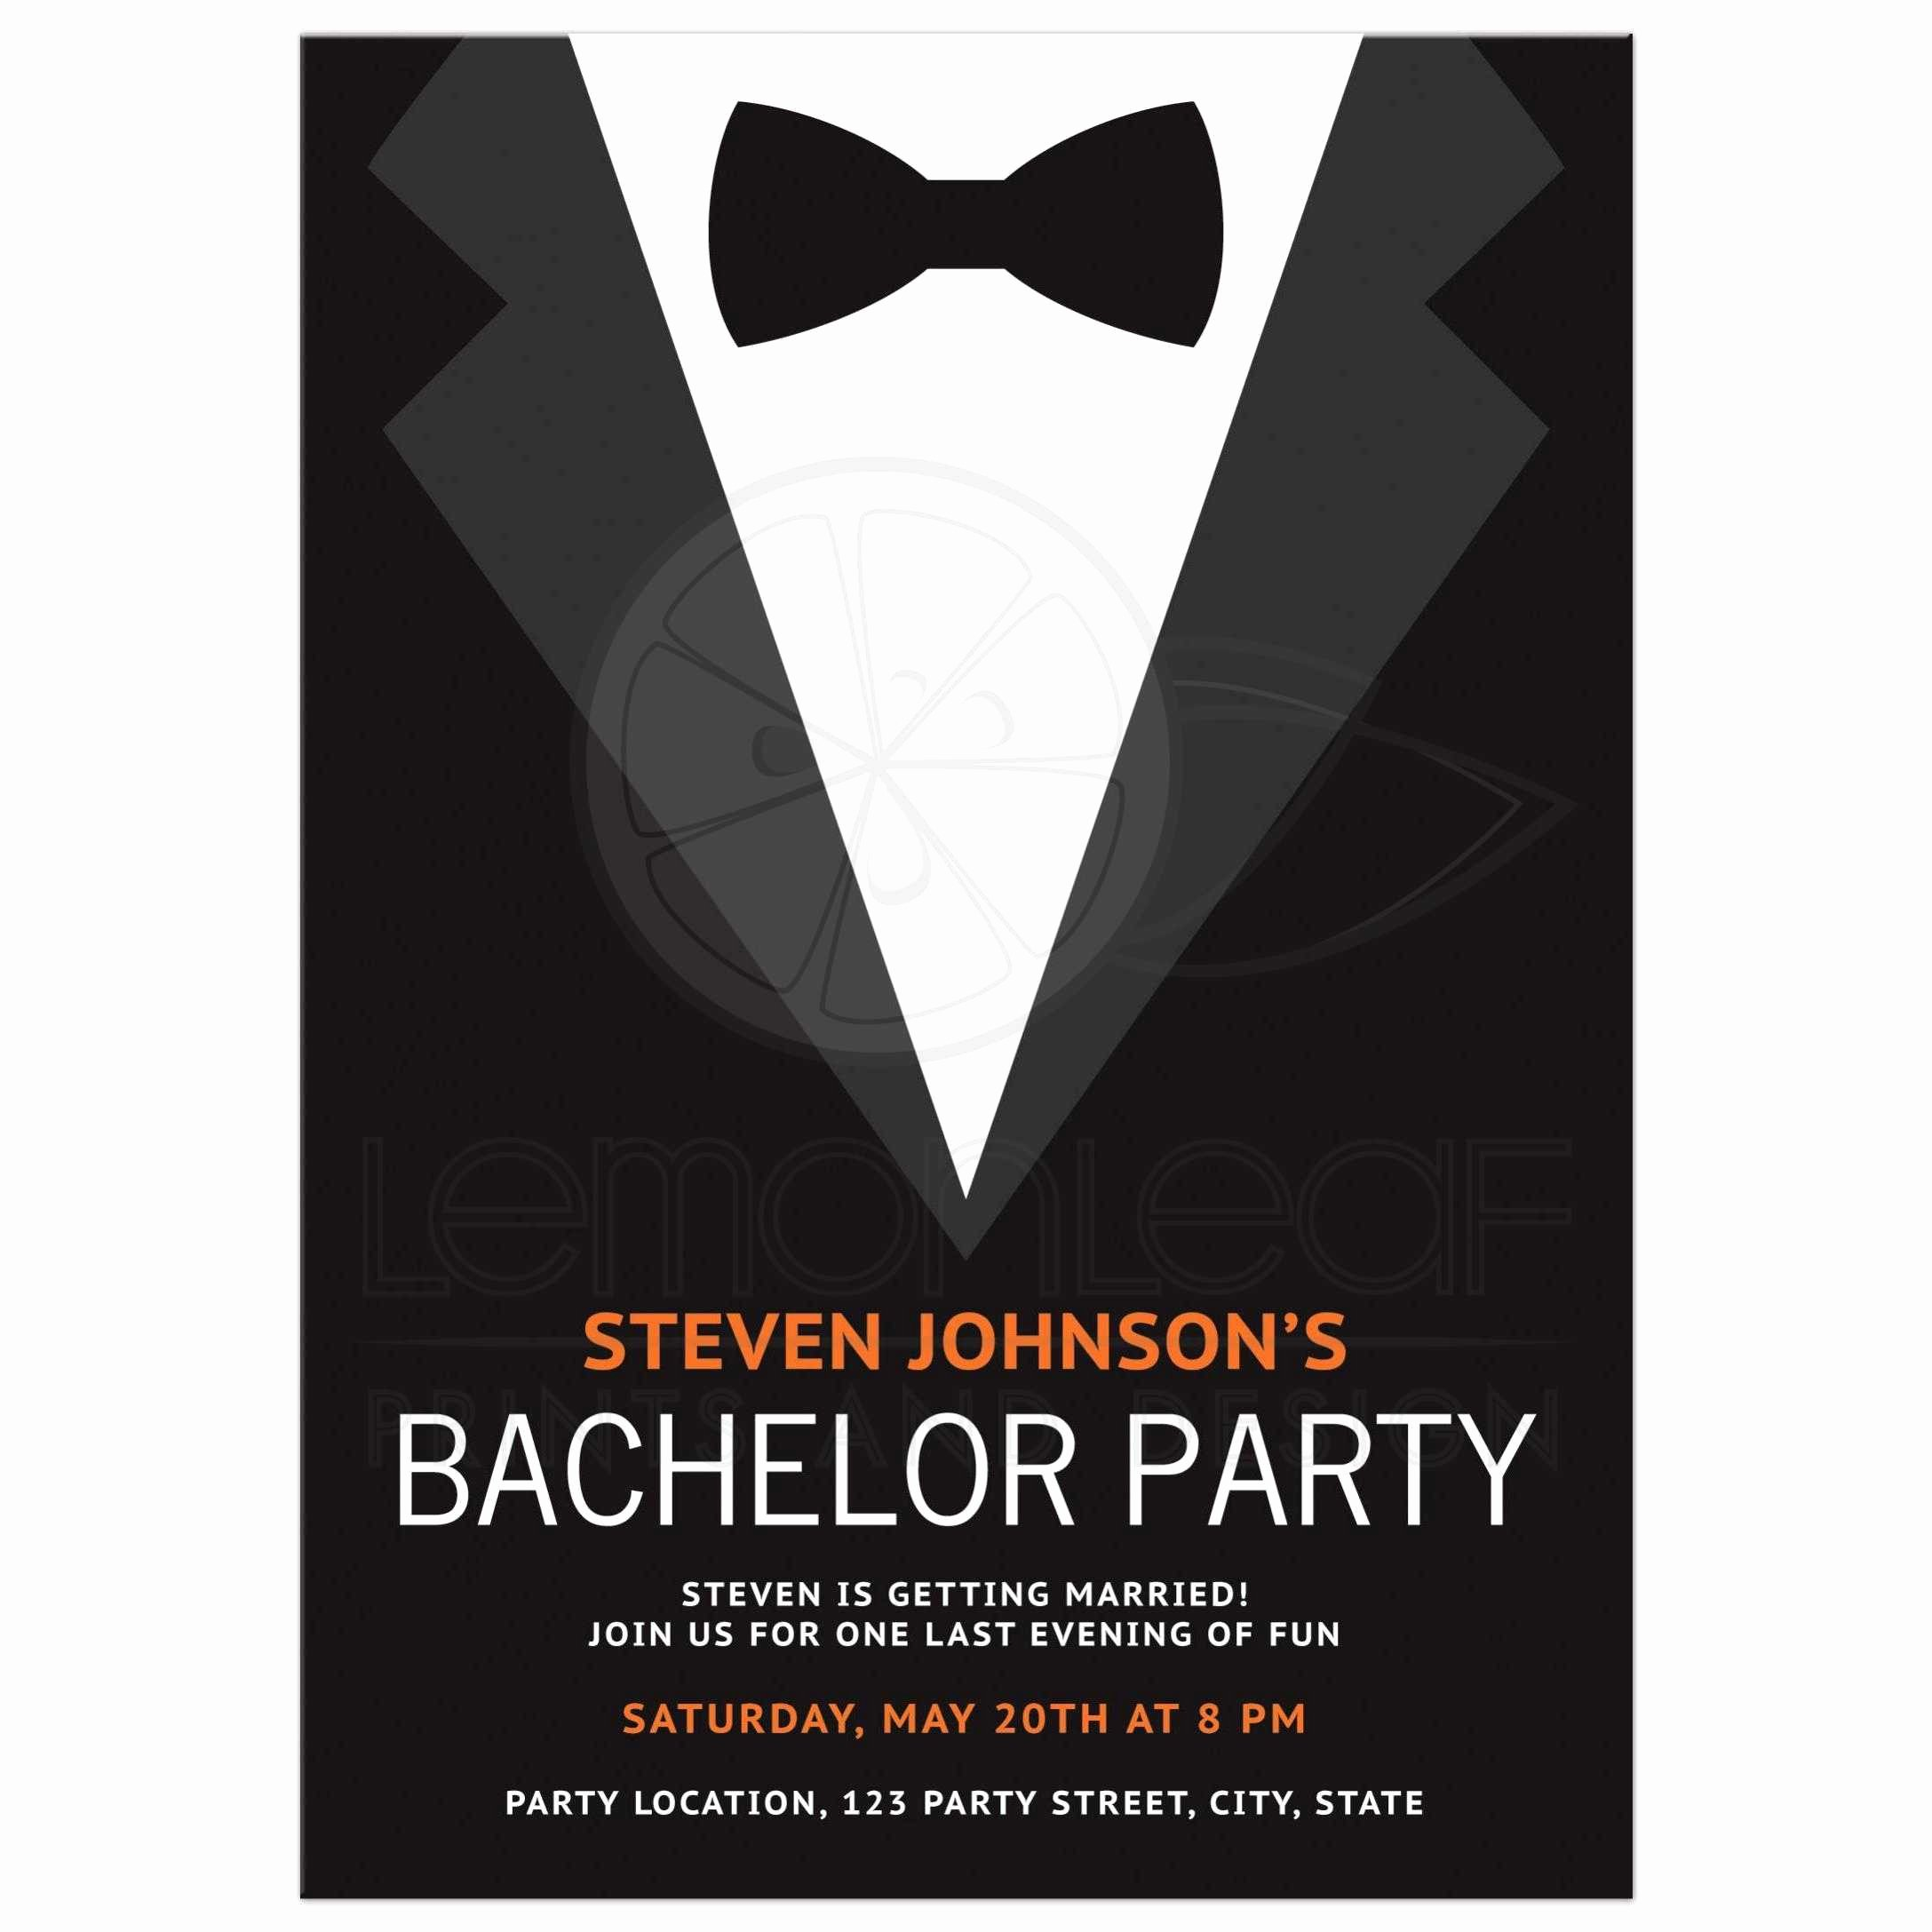 Bachelors Party Invitation Template New Bachelor Party Invitation with Bow Tie